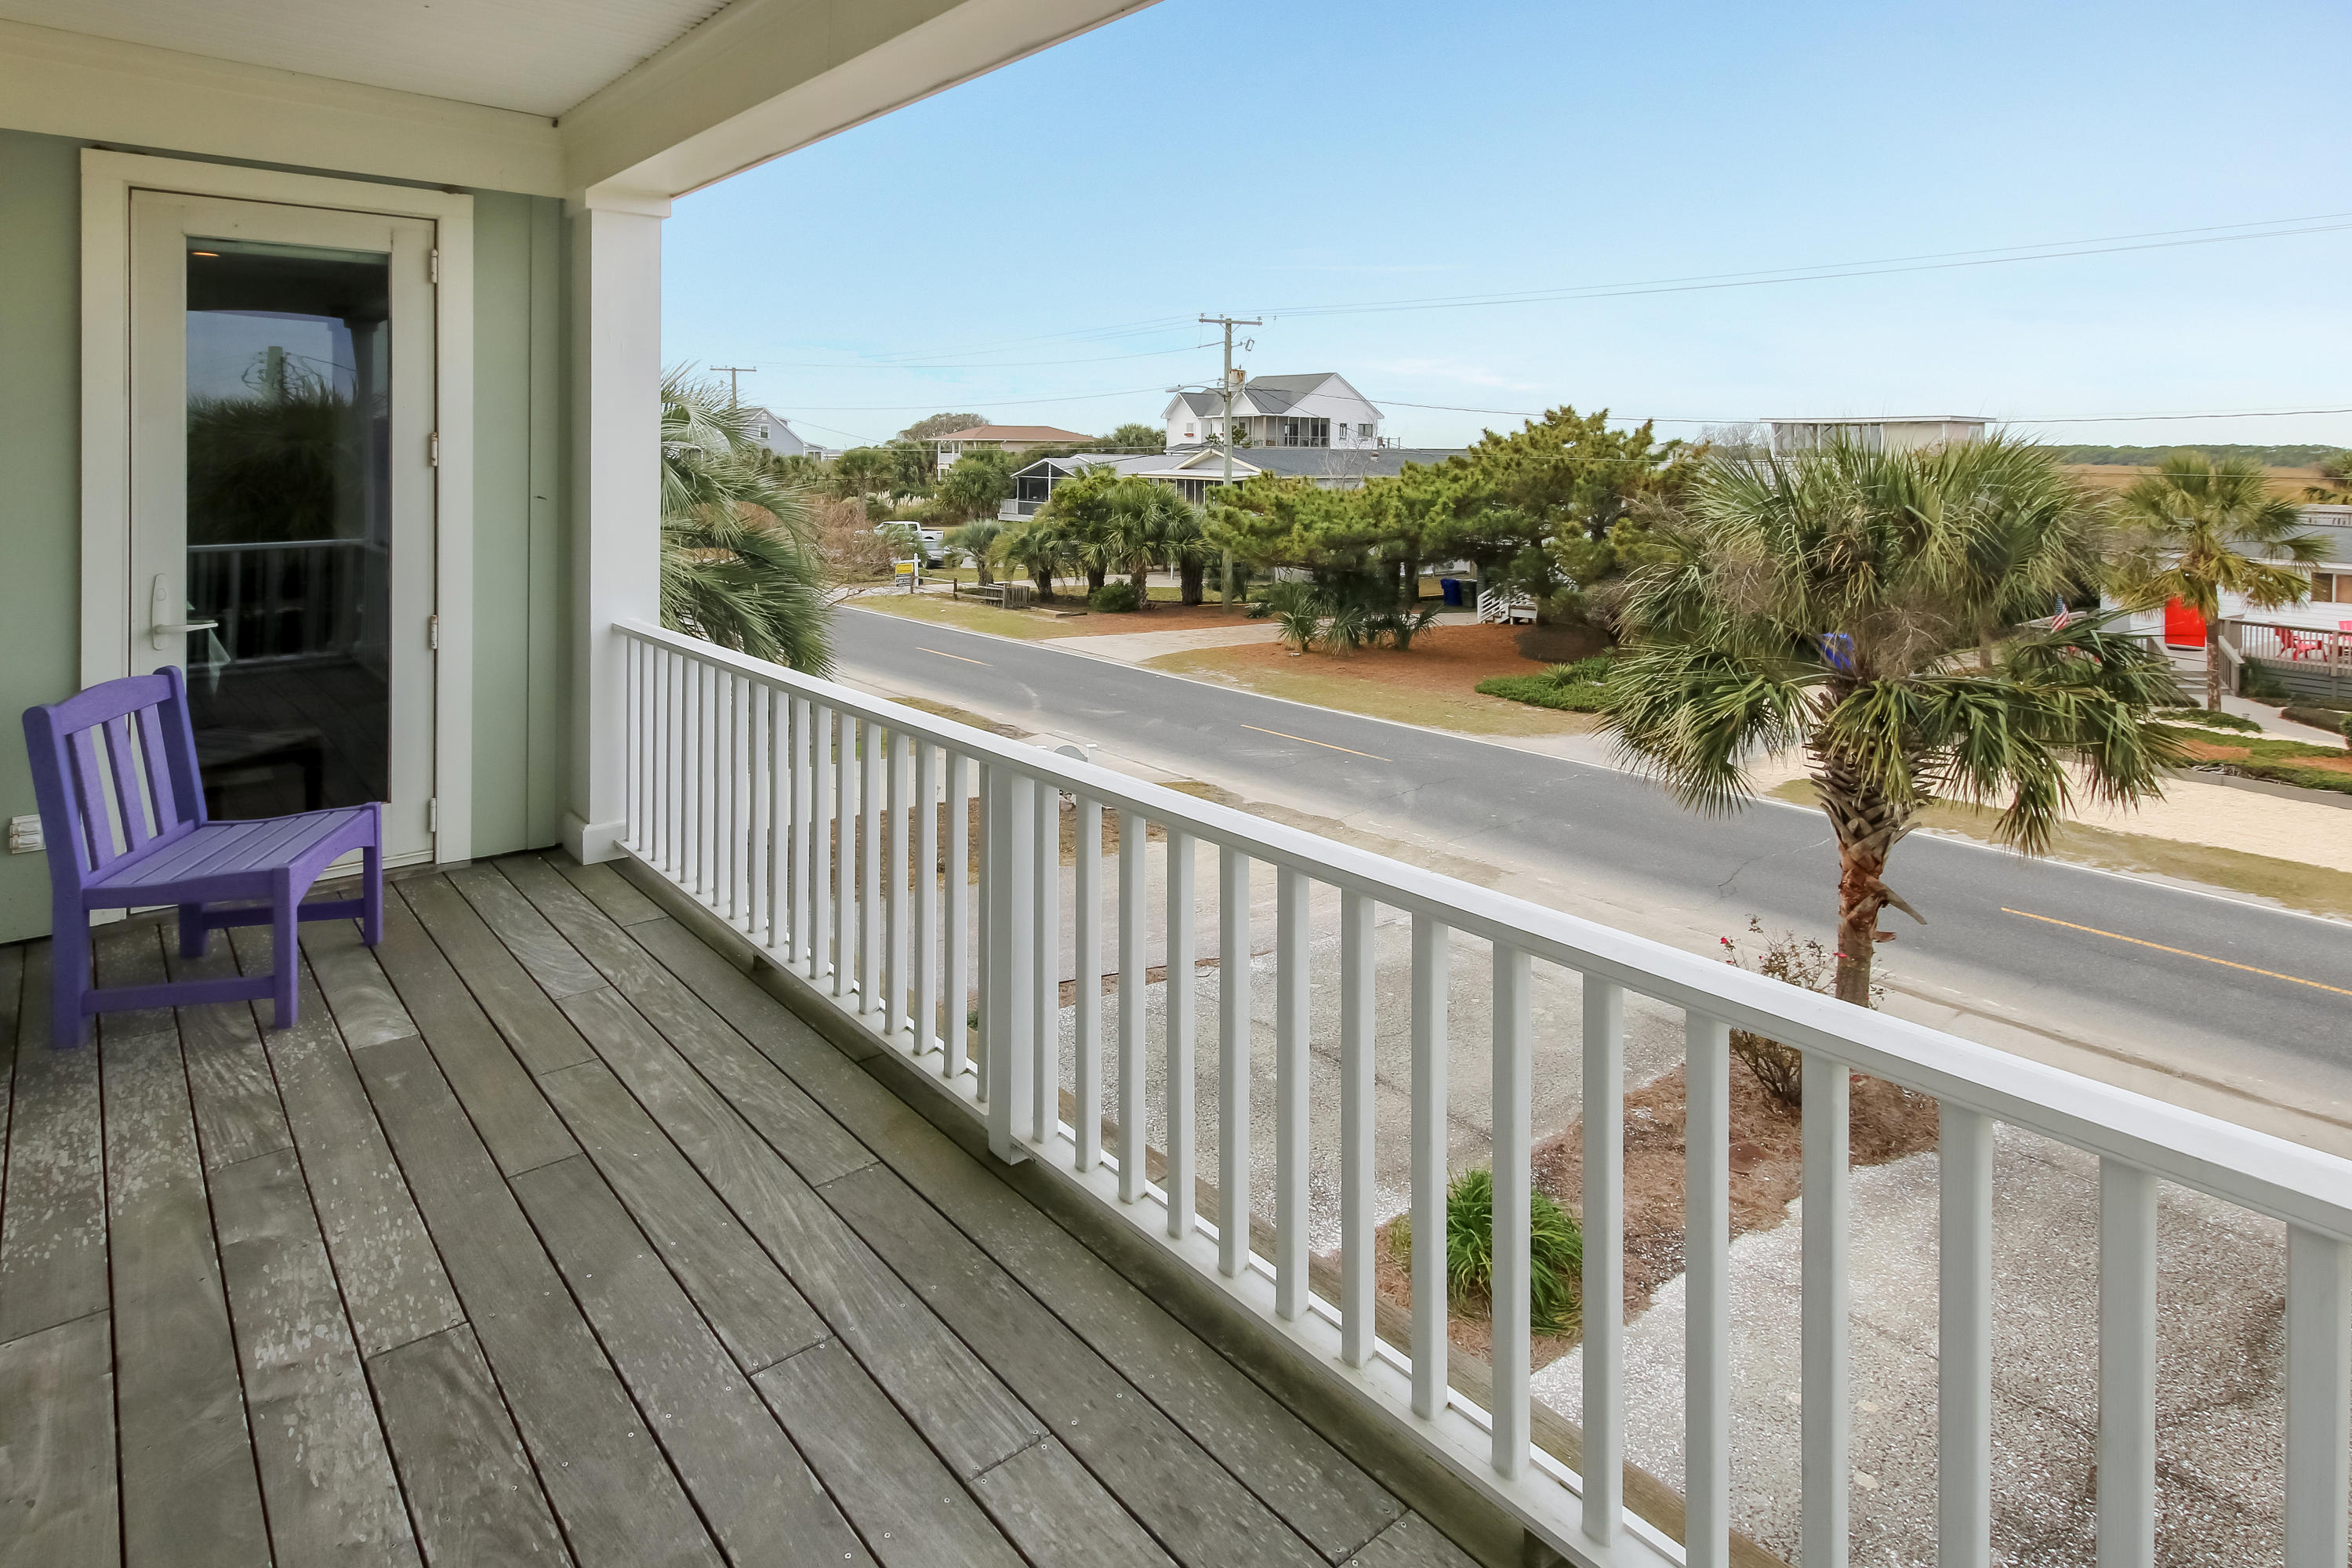 East Folly Beach Shores Homes For Sale - 1681 Ashley A, Folly Beach, SC - 22